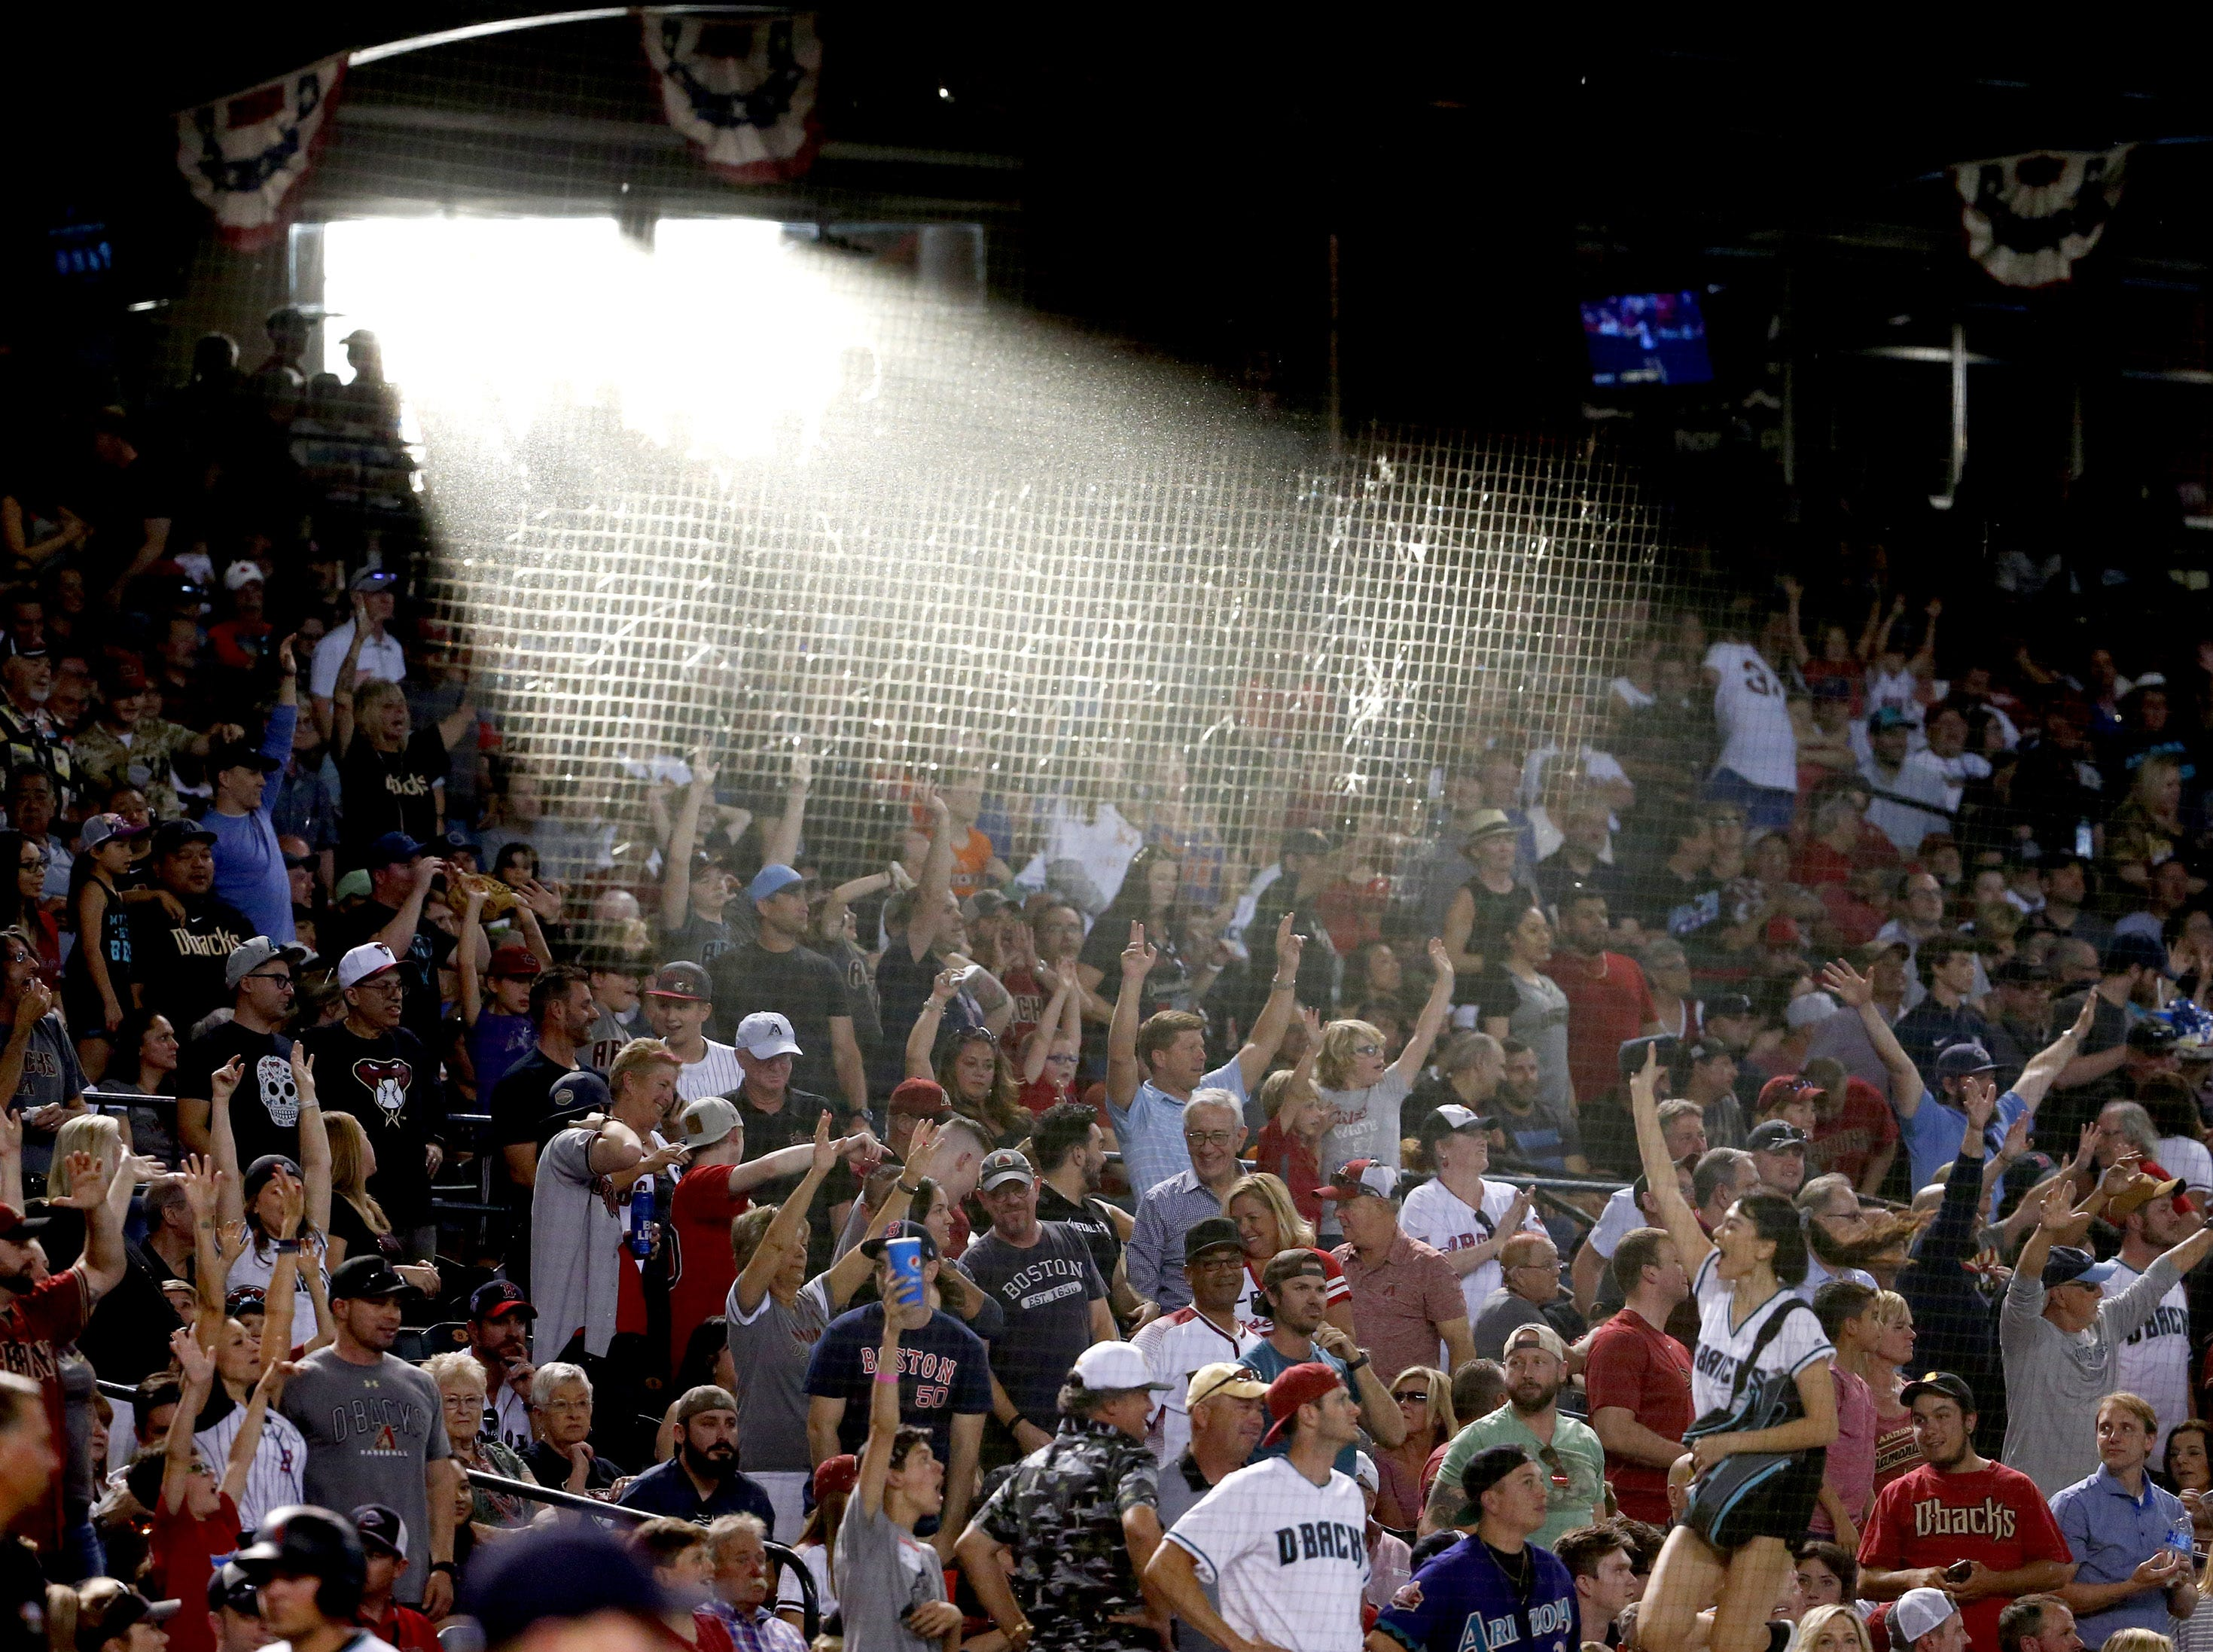 Sunlight spills into the Chase Field during Opening Day at against the Boston Red Sox in Phoenix on April 5.